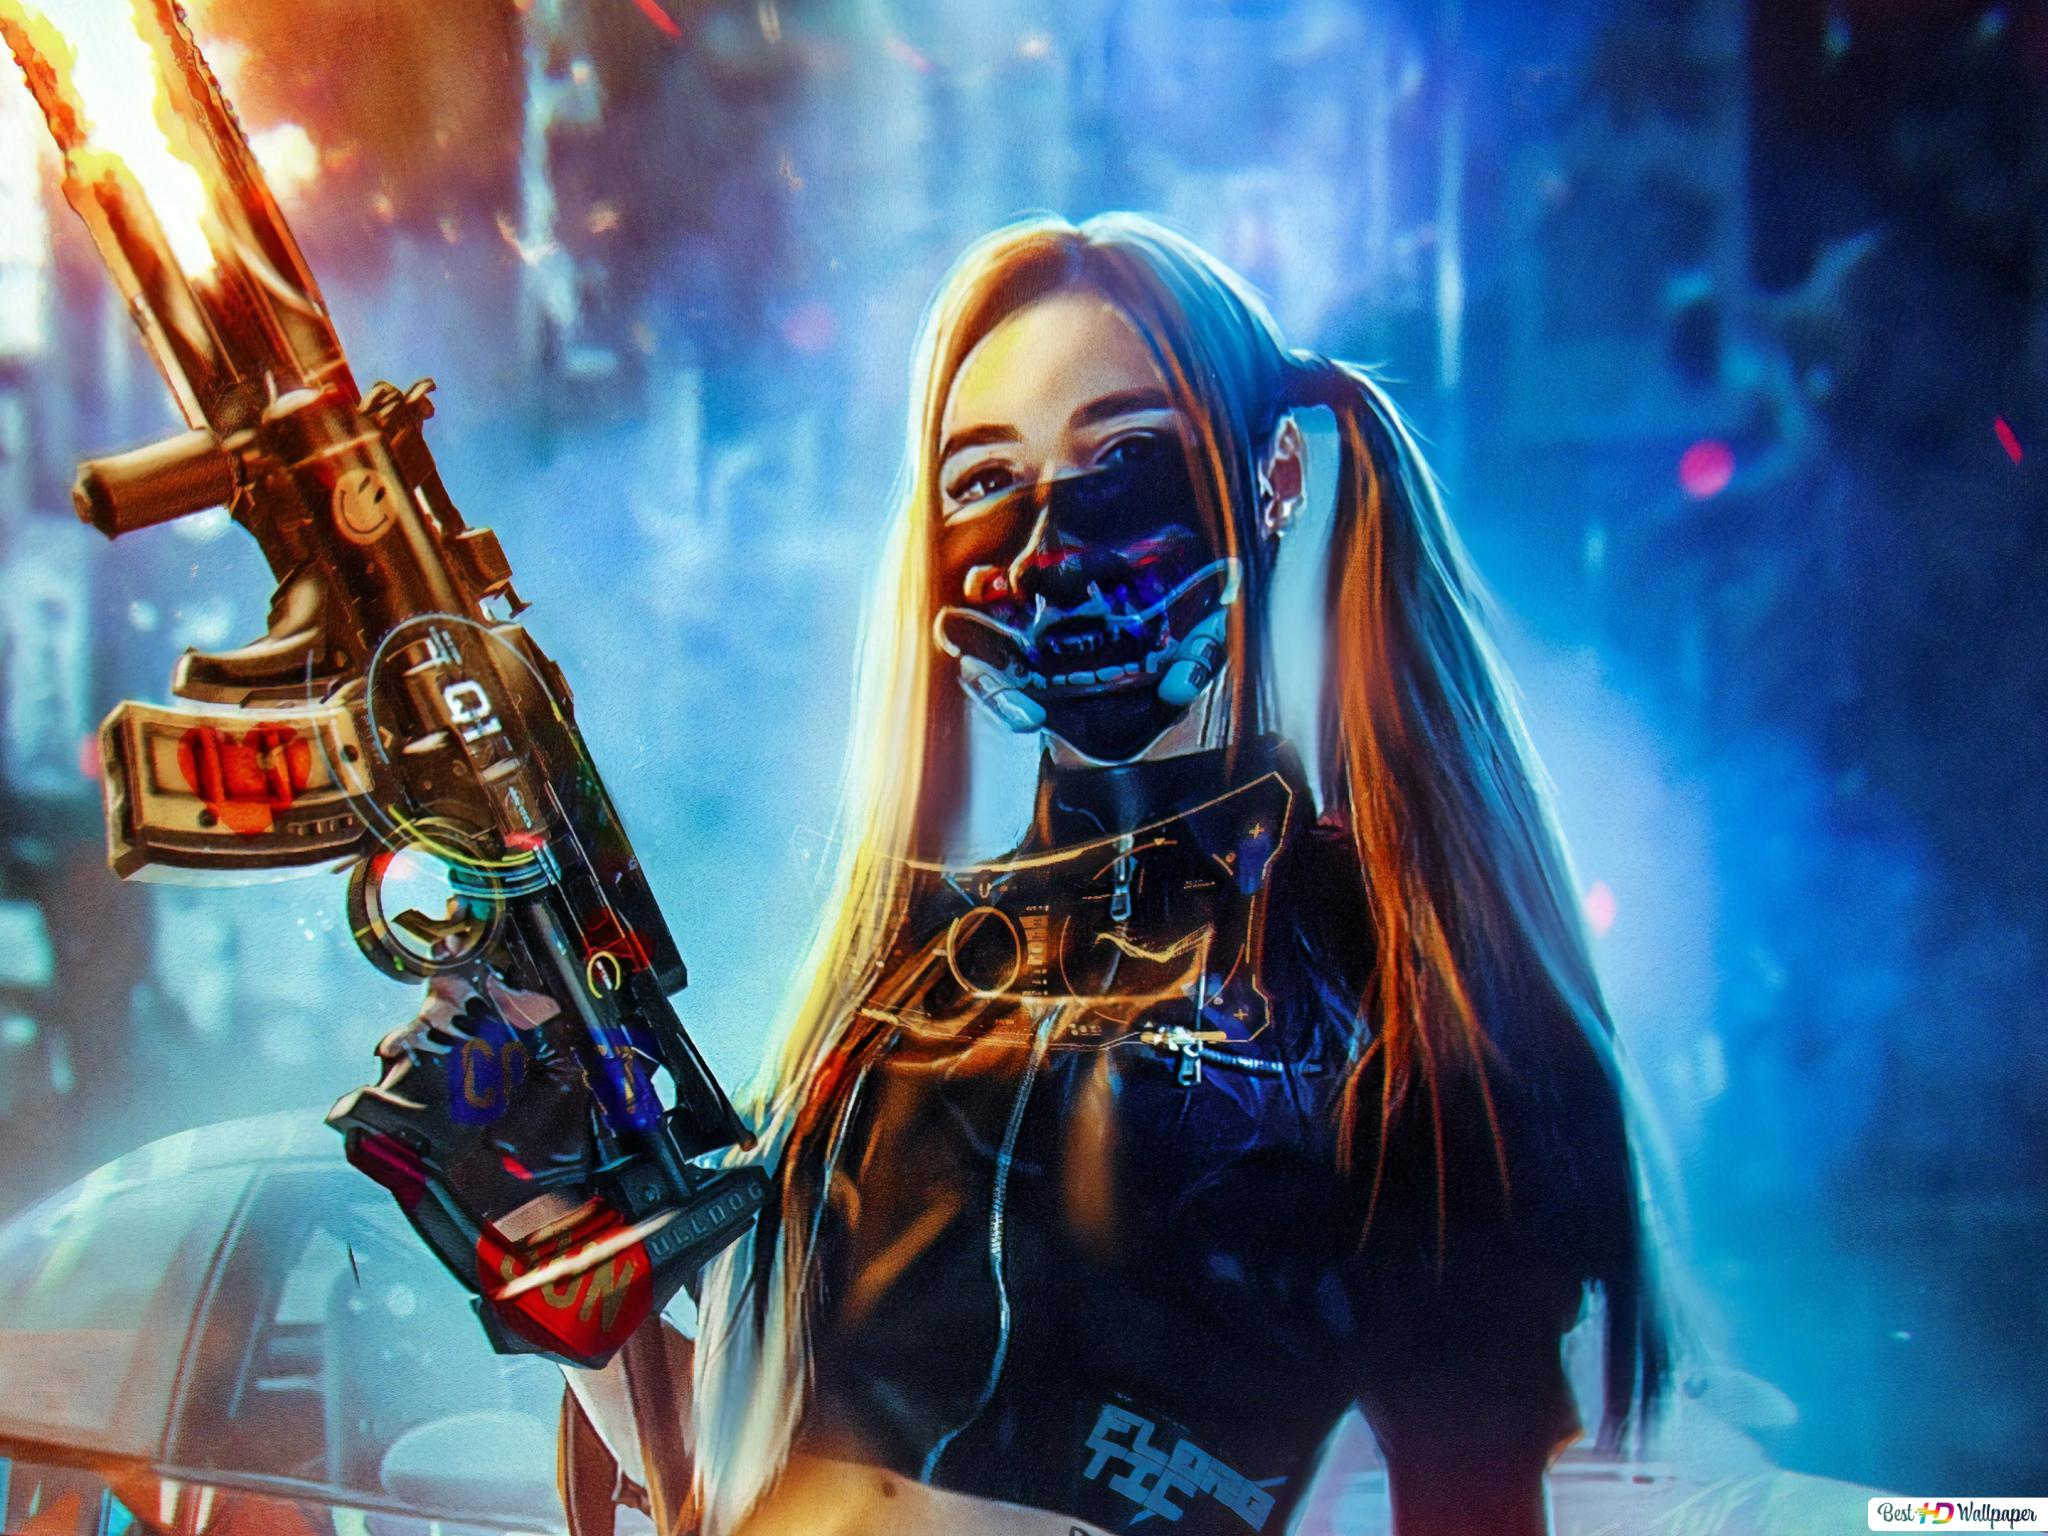 Cyberpunk Girl Hd Wallpaper Download